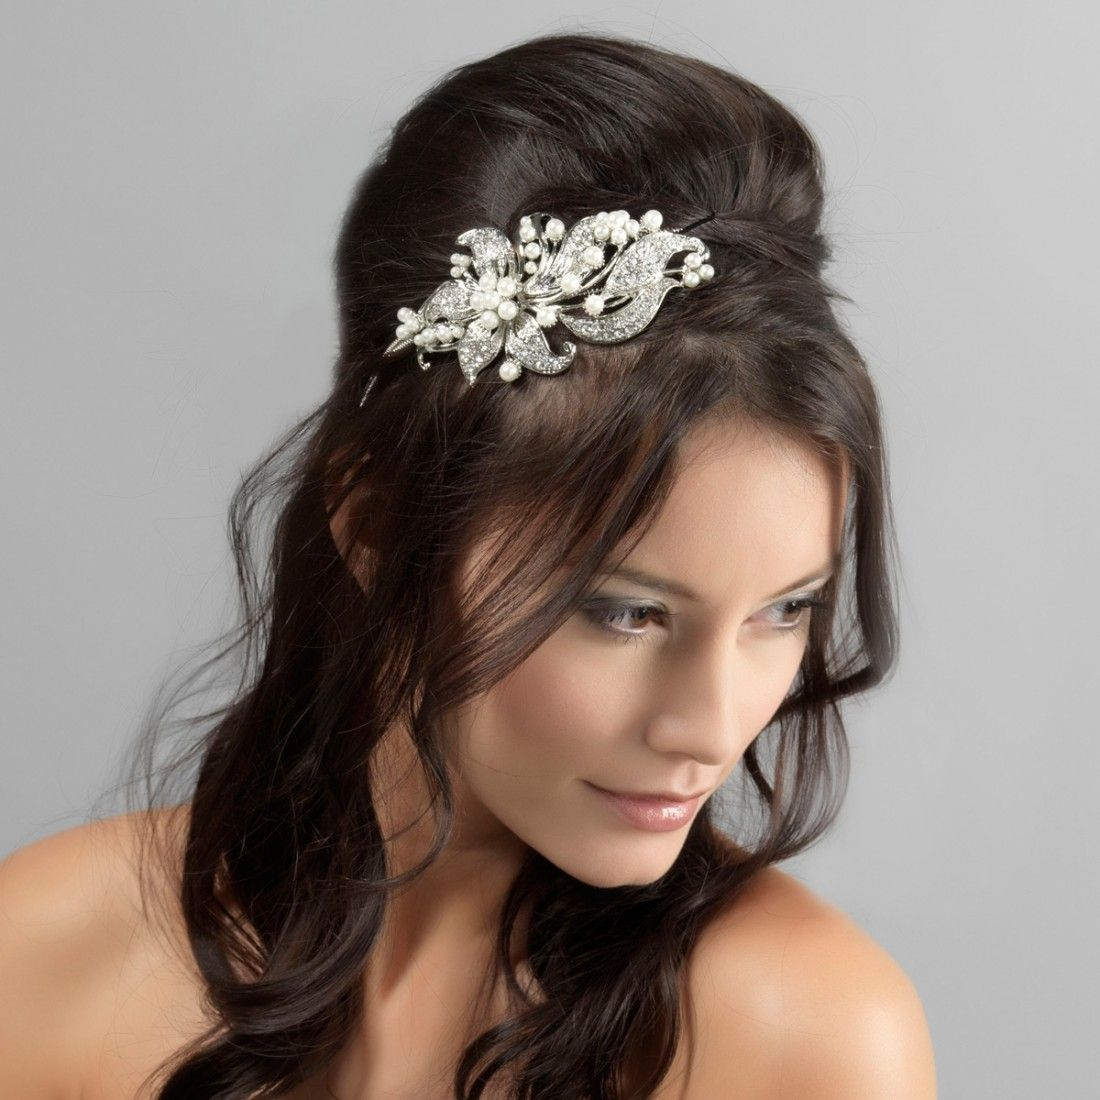 precious extravagance side tiara | wedding hair accessories and hair